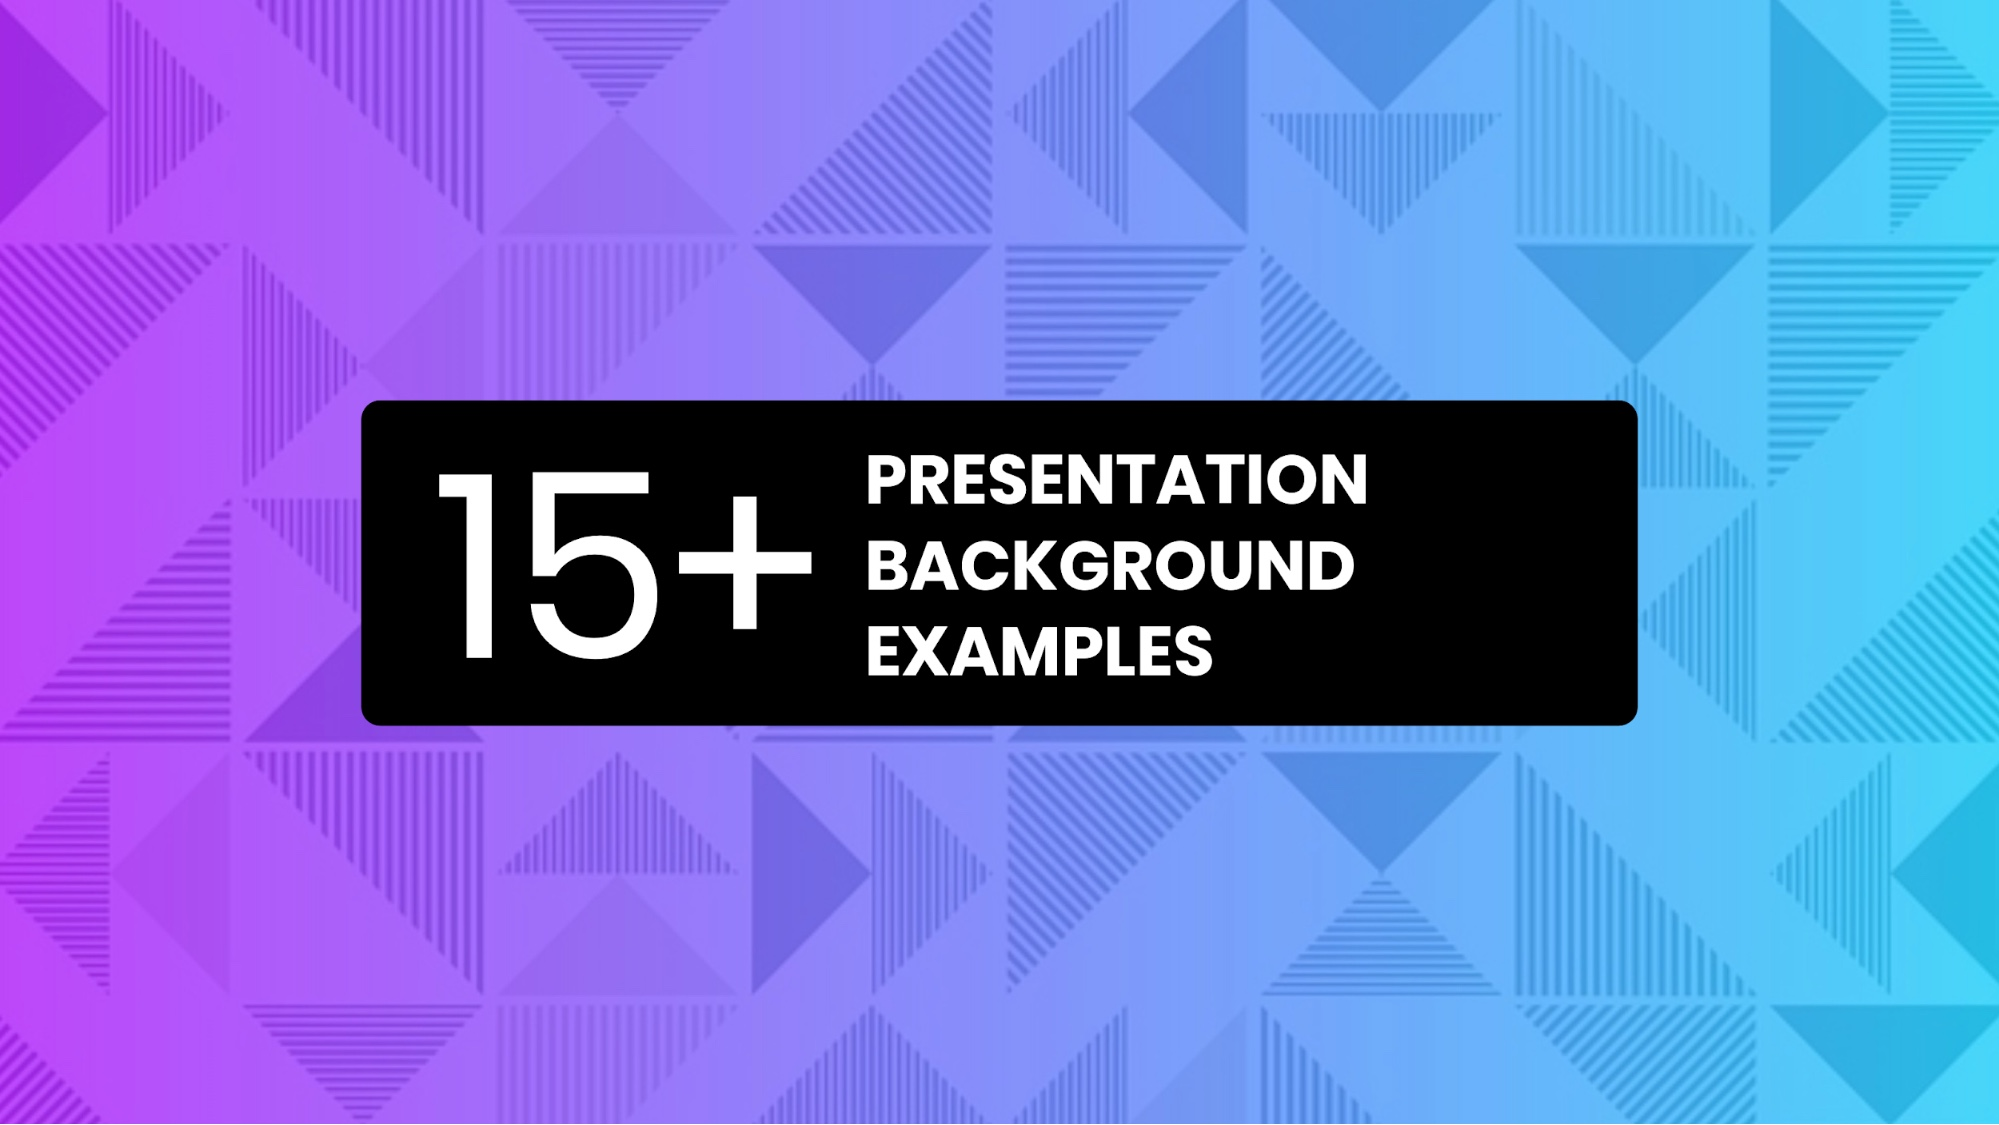 15+ Presentation Background Examples13